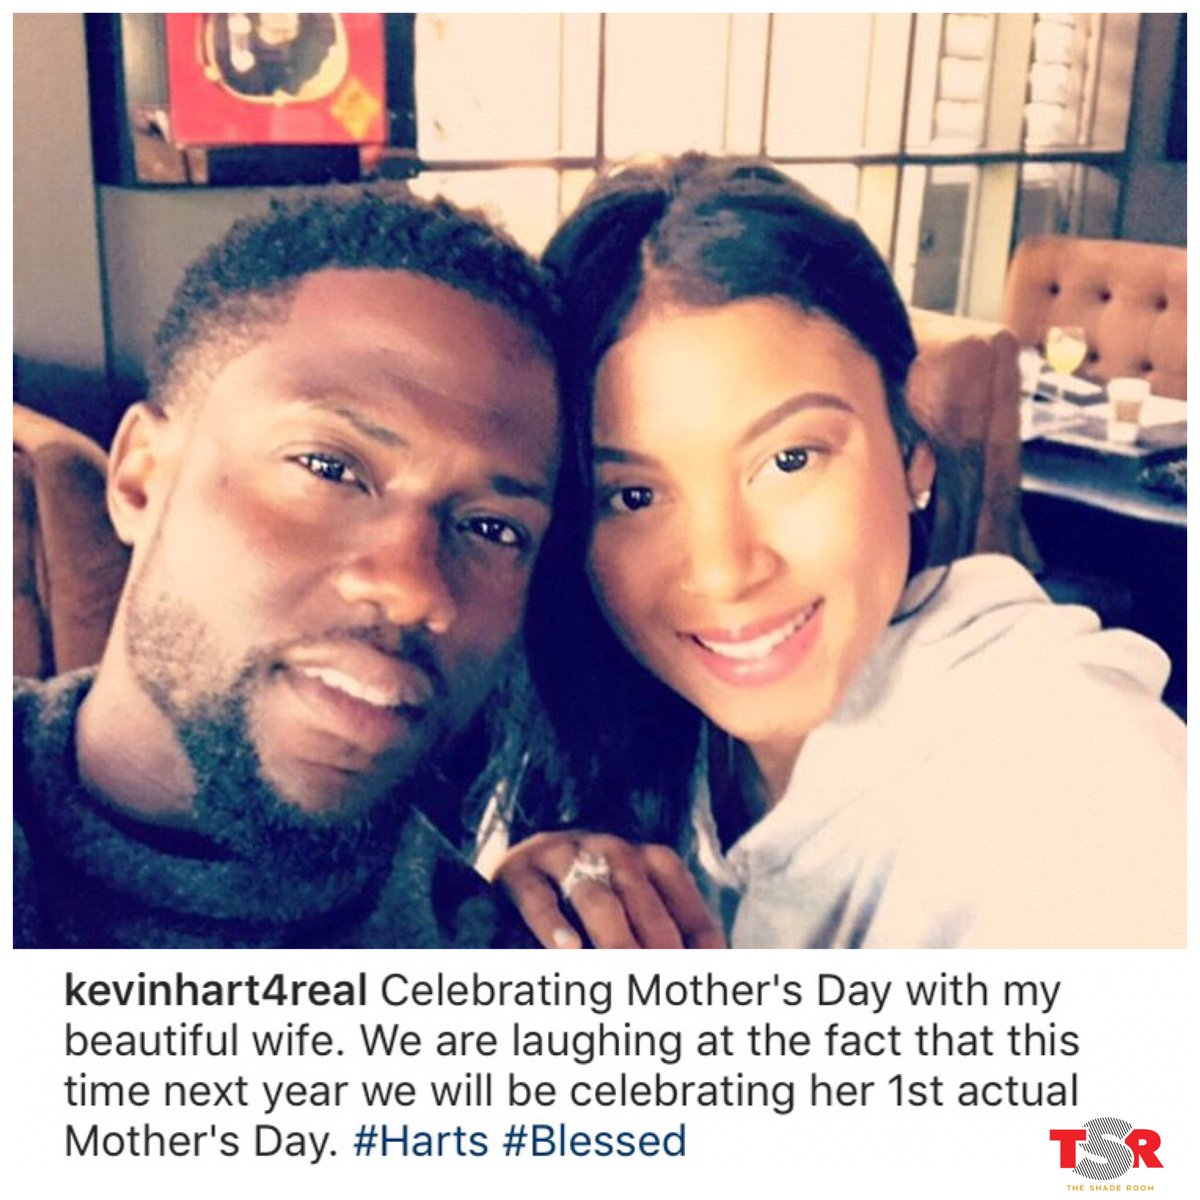 Congrats to #KevinHart and his wife! They're expecting their first child together! #ItsABoy